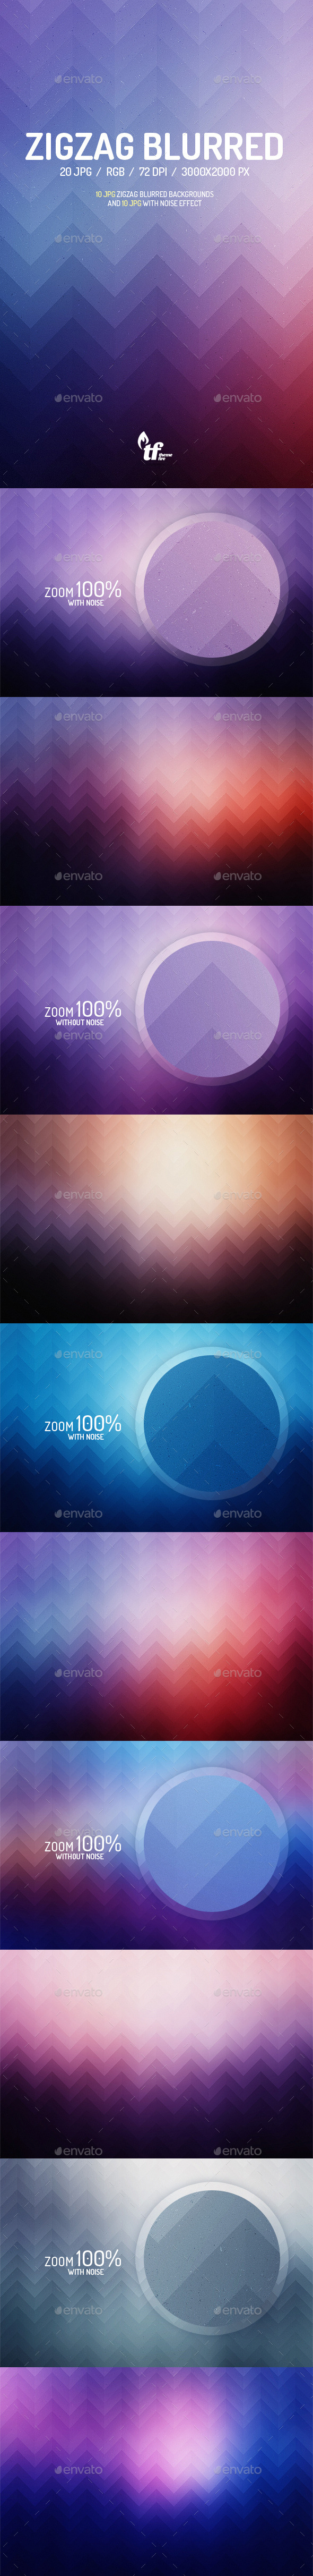 GraphicRiver Zigzag Blurred Backgrounds 8992820